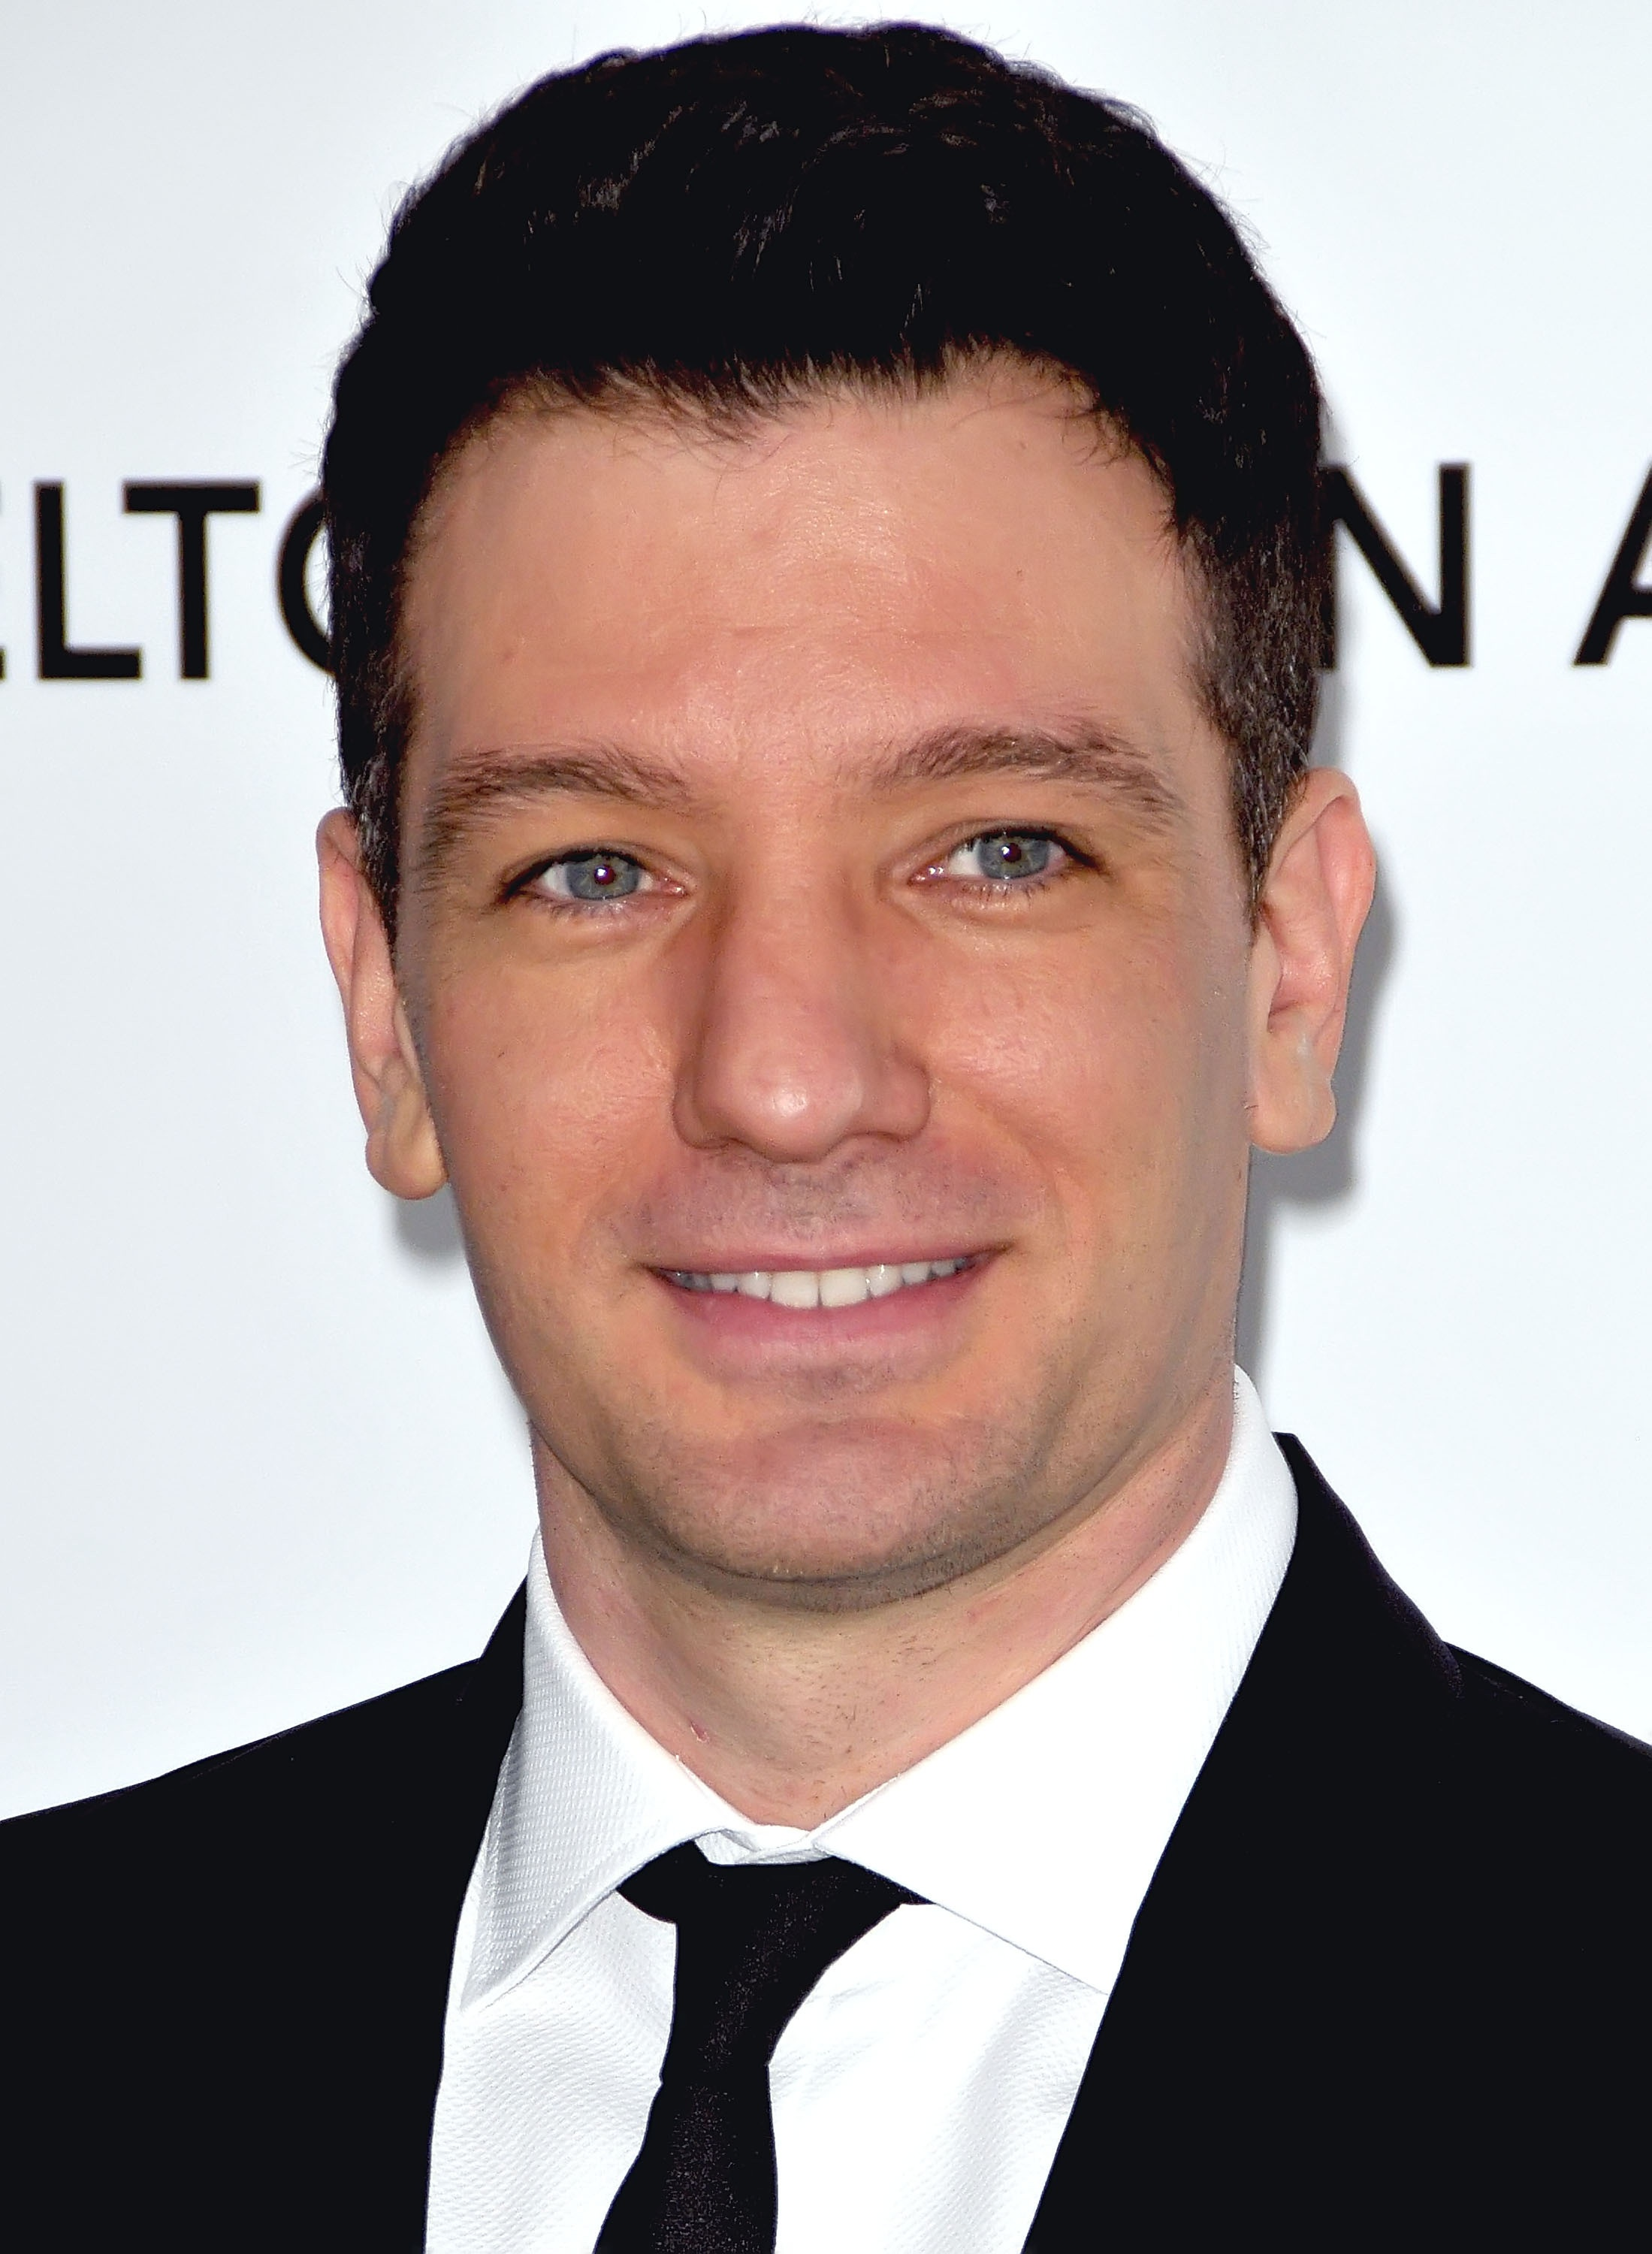 The 41-year old son of father Roy Chasez and mother Karen Chasez, 180 cm tall Joshua Chasez in 2018 photo